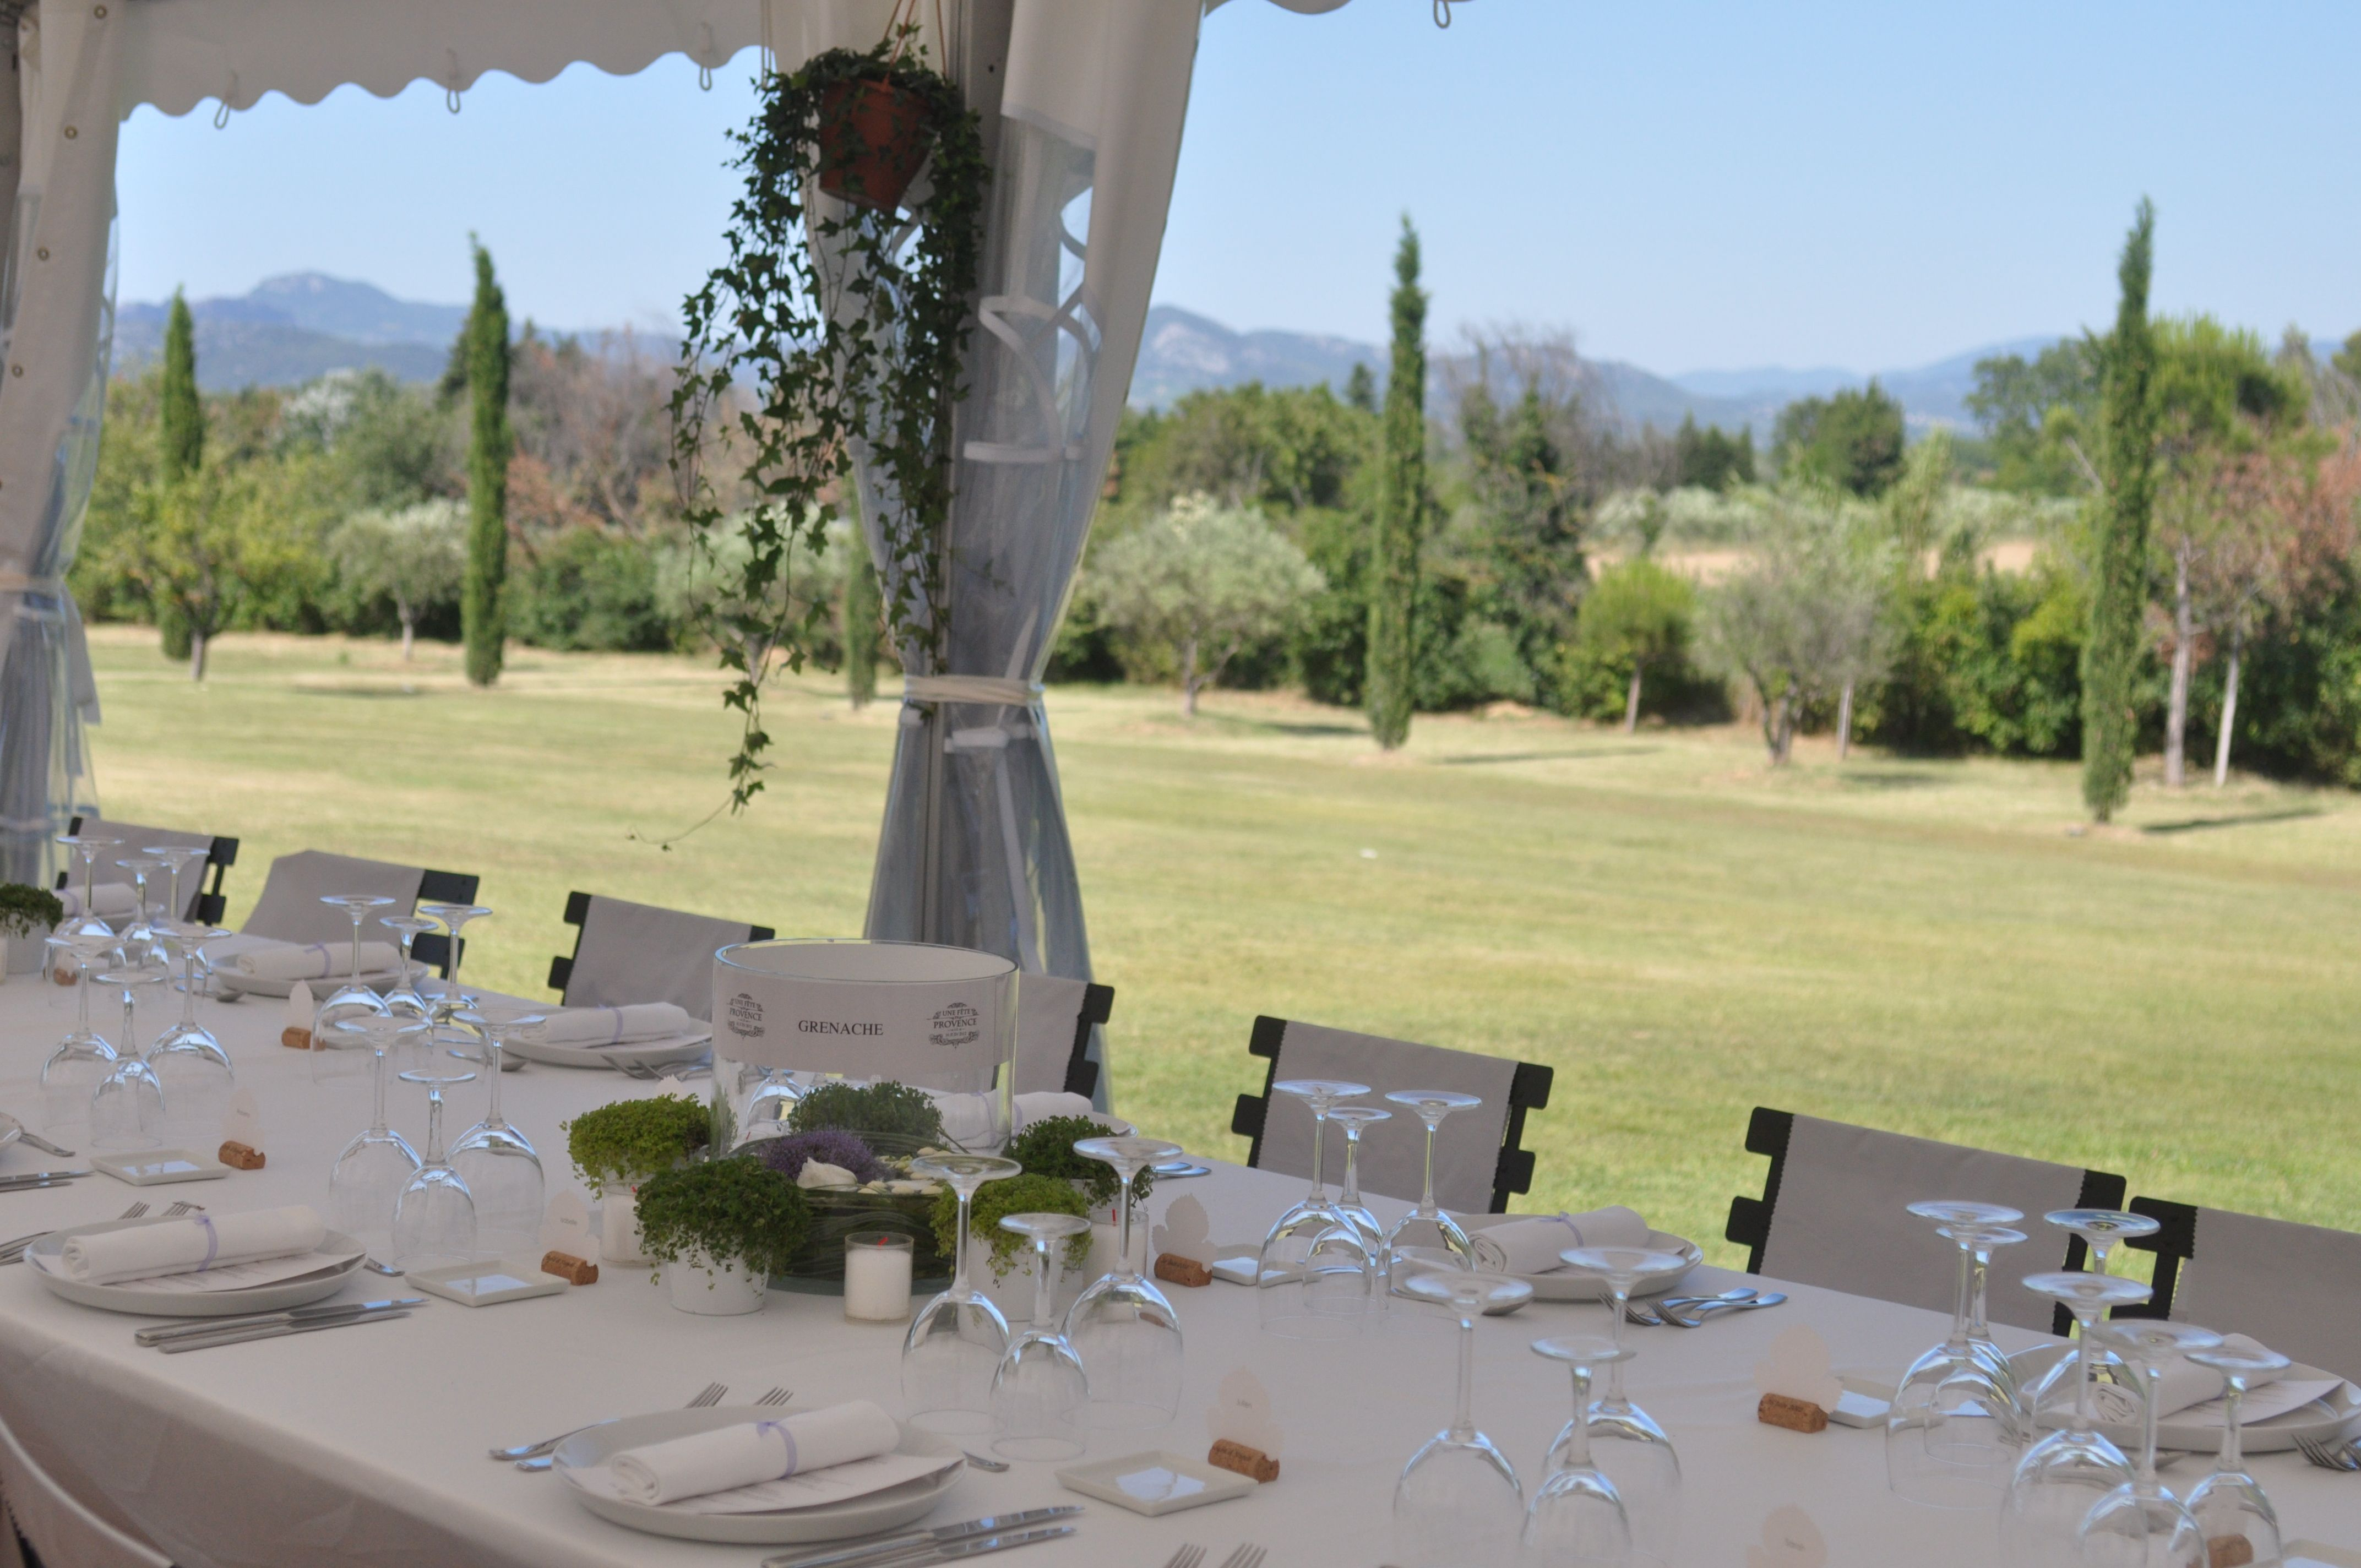 Indoor & Outdoor Marquee Set Up - Provence - South of France - Destinations Wedding